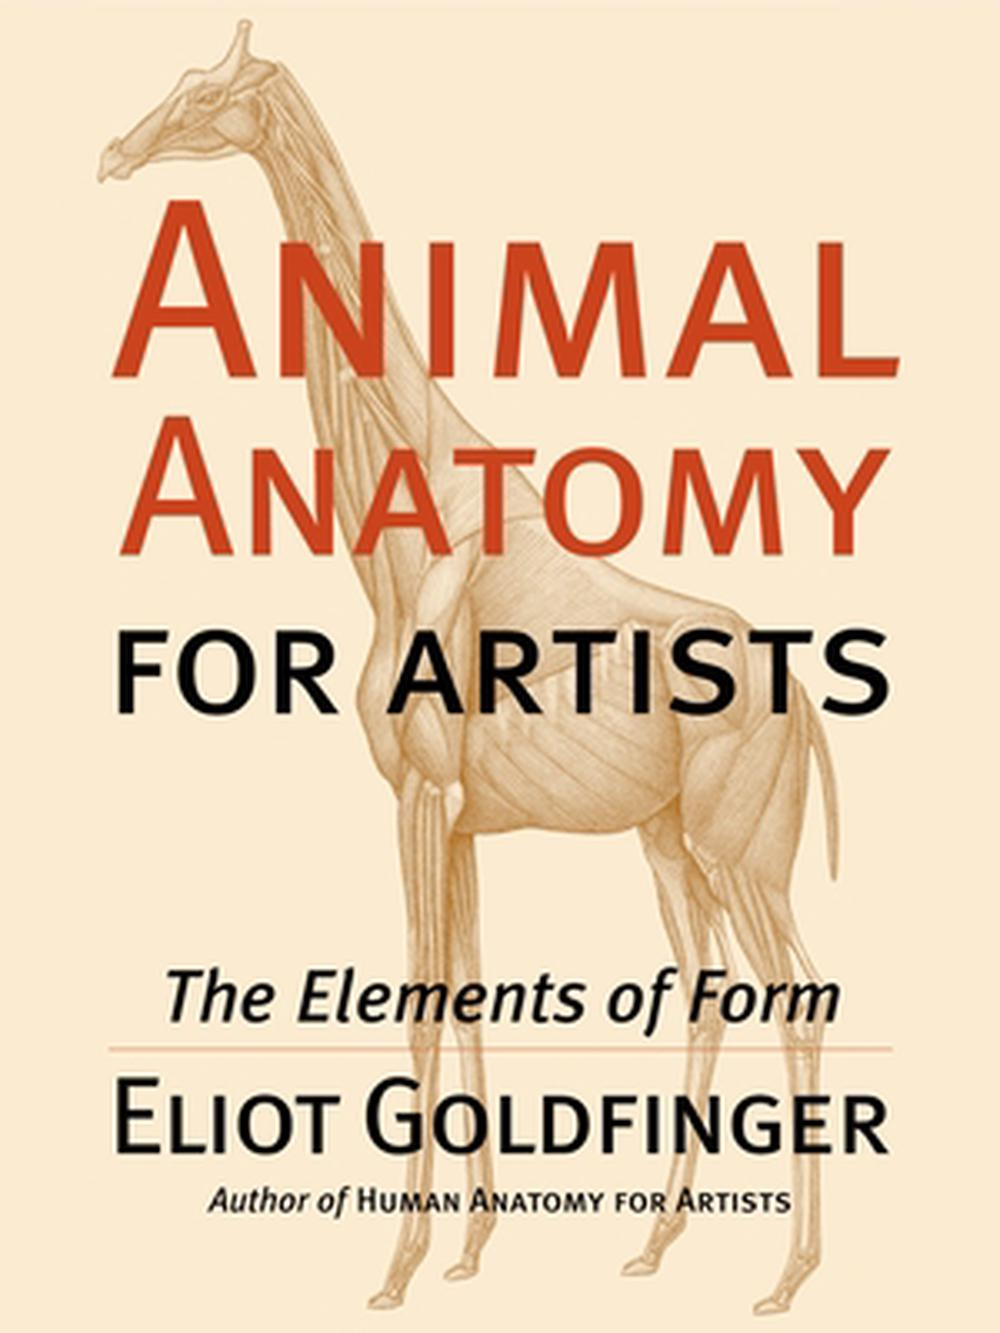 Animal Anatomy for Artists: The Elements of Form by Eliot Goldfinger ...